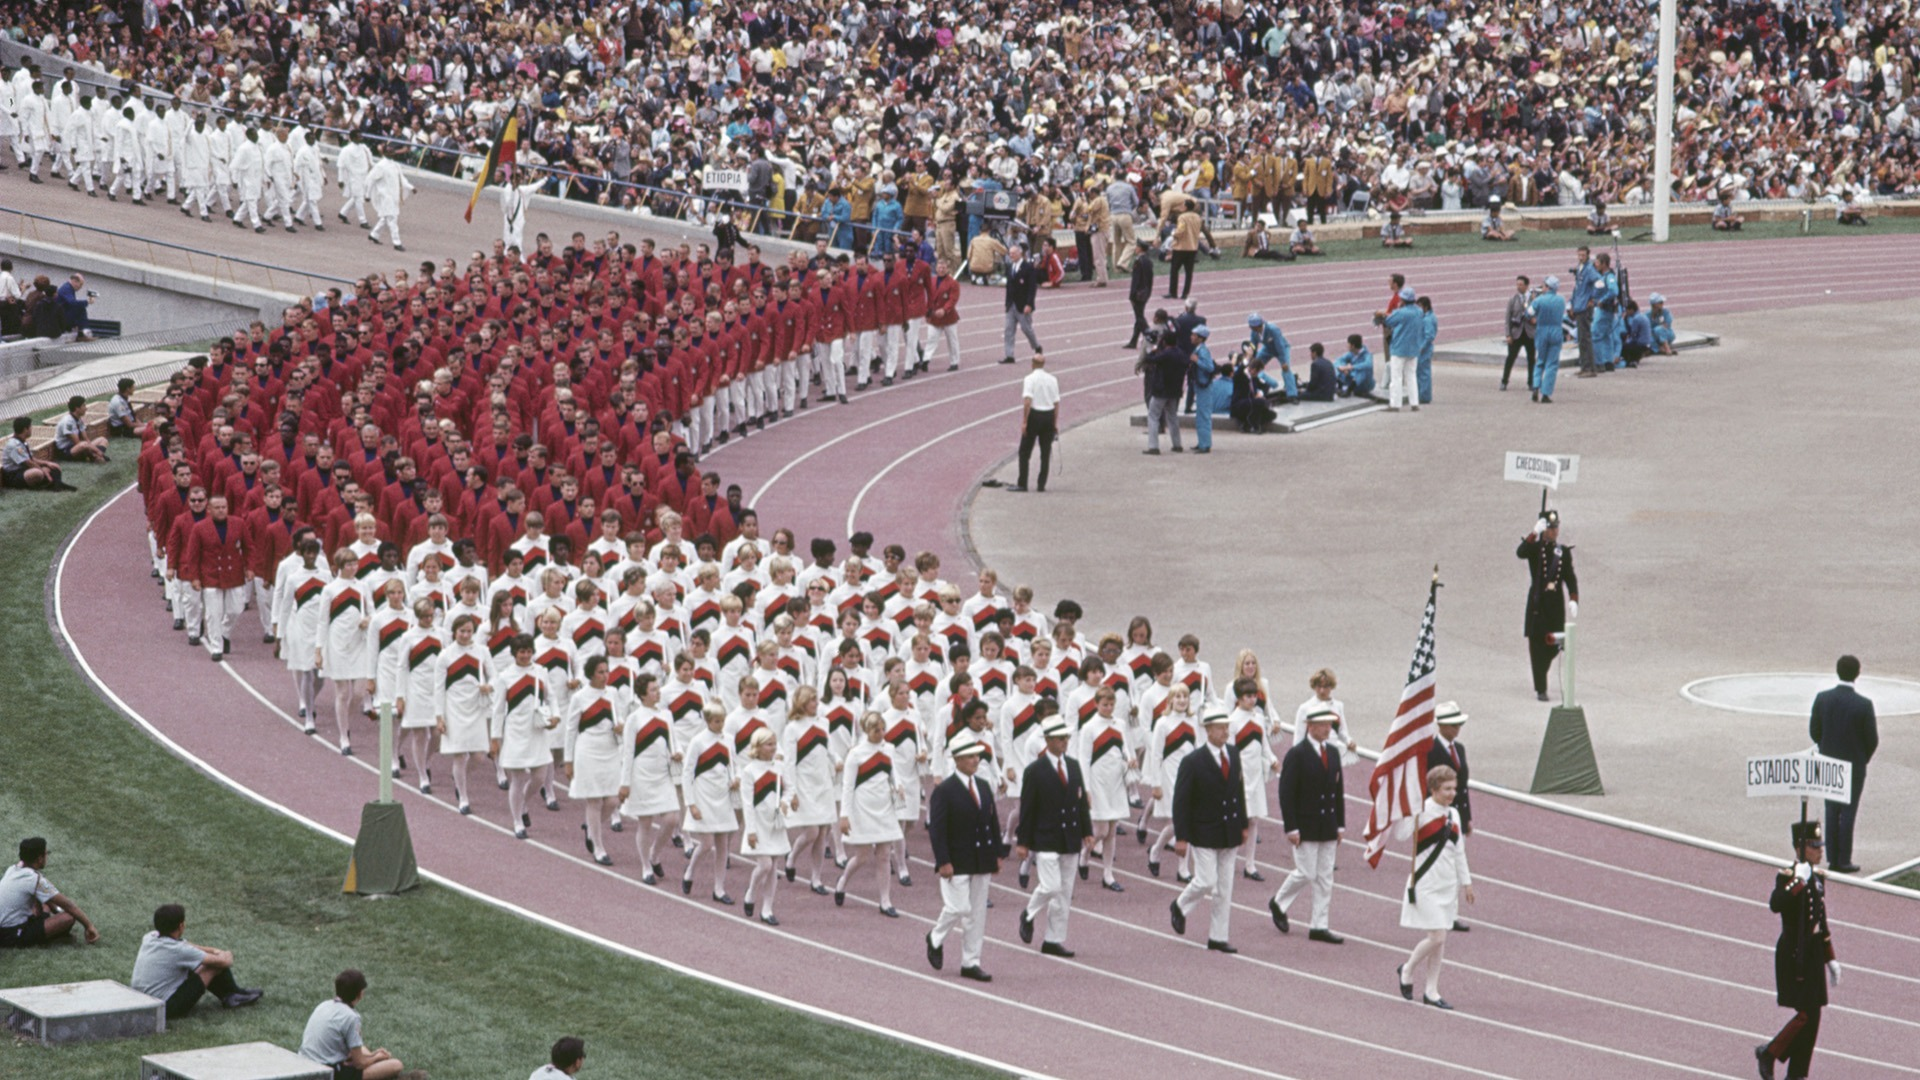 Jan York-Romary is the flag bearer leading Team USA aroudn the track at the Mexico City 1968 Opening Ceremony